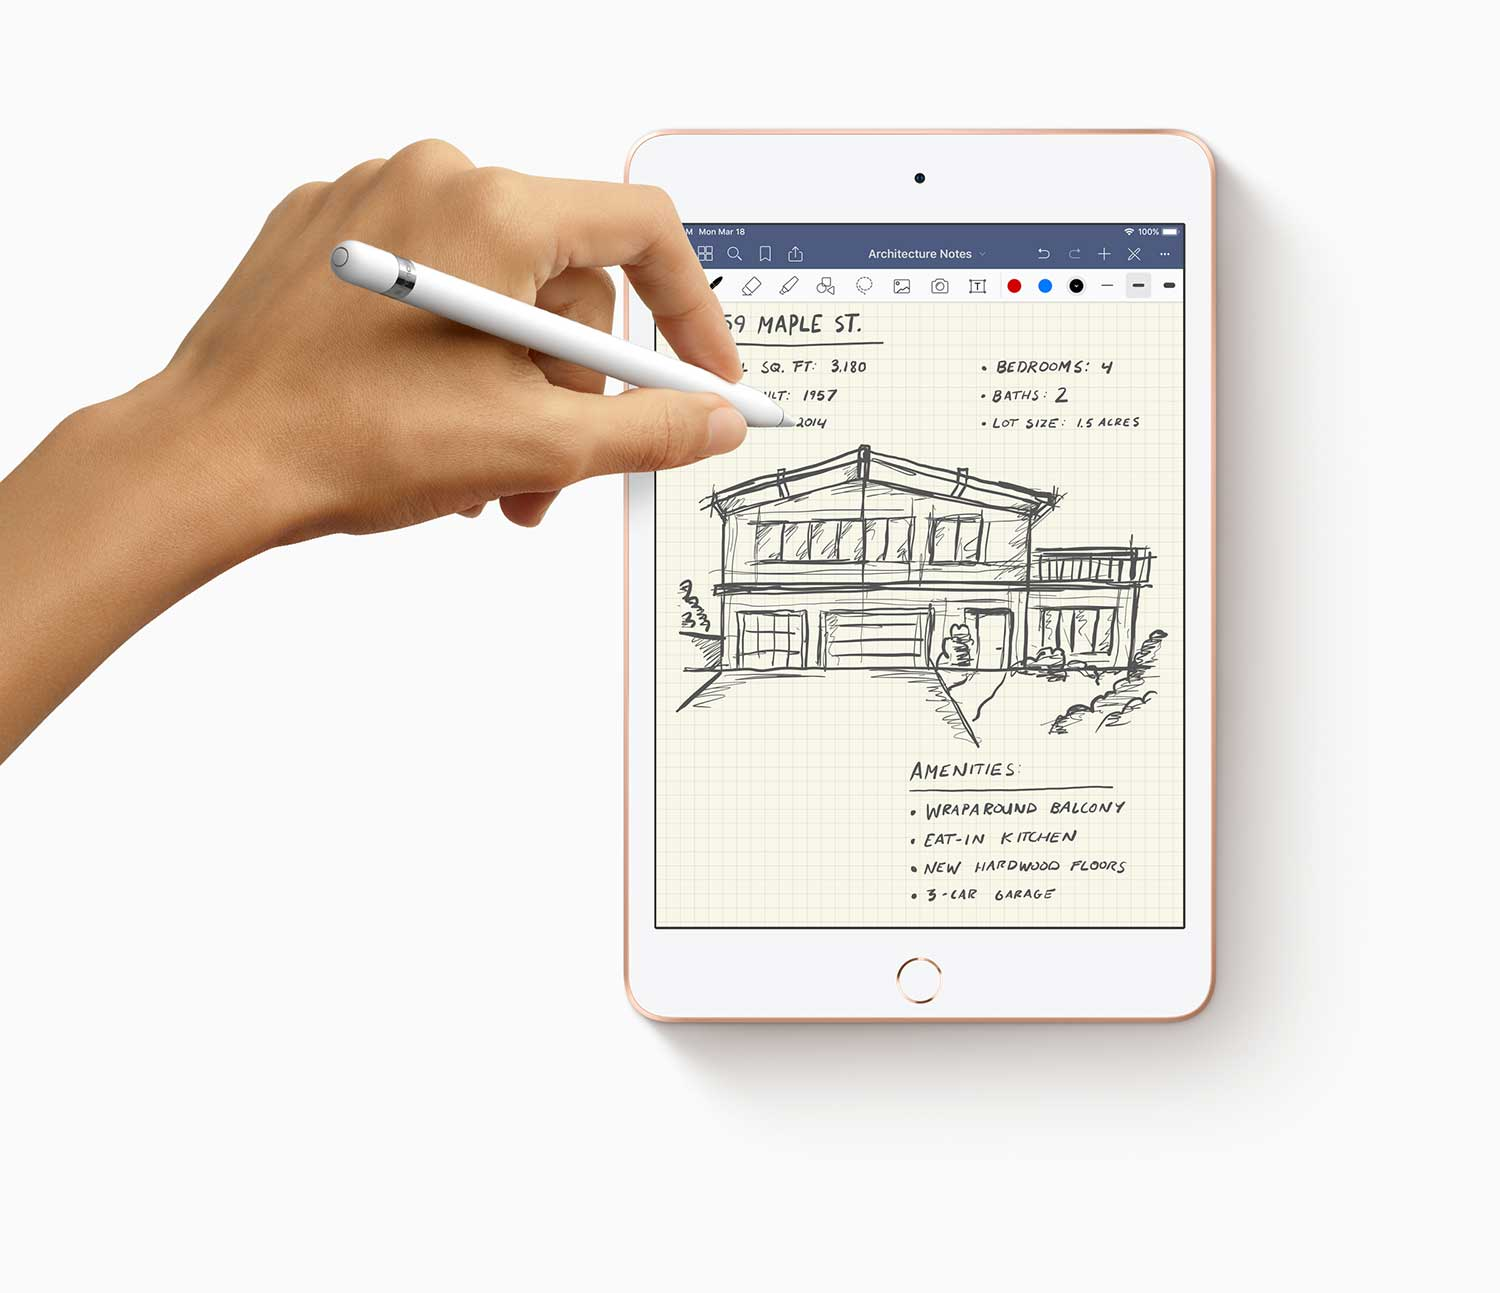 New-iPad-Mini-Apple-Pencil-with-hands-drawing-03162019